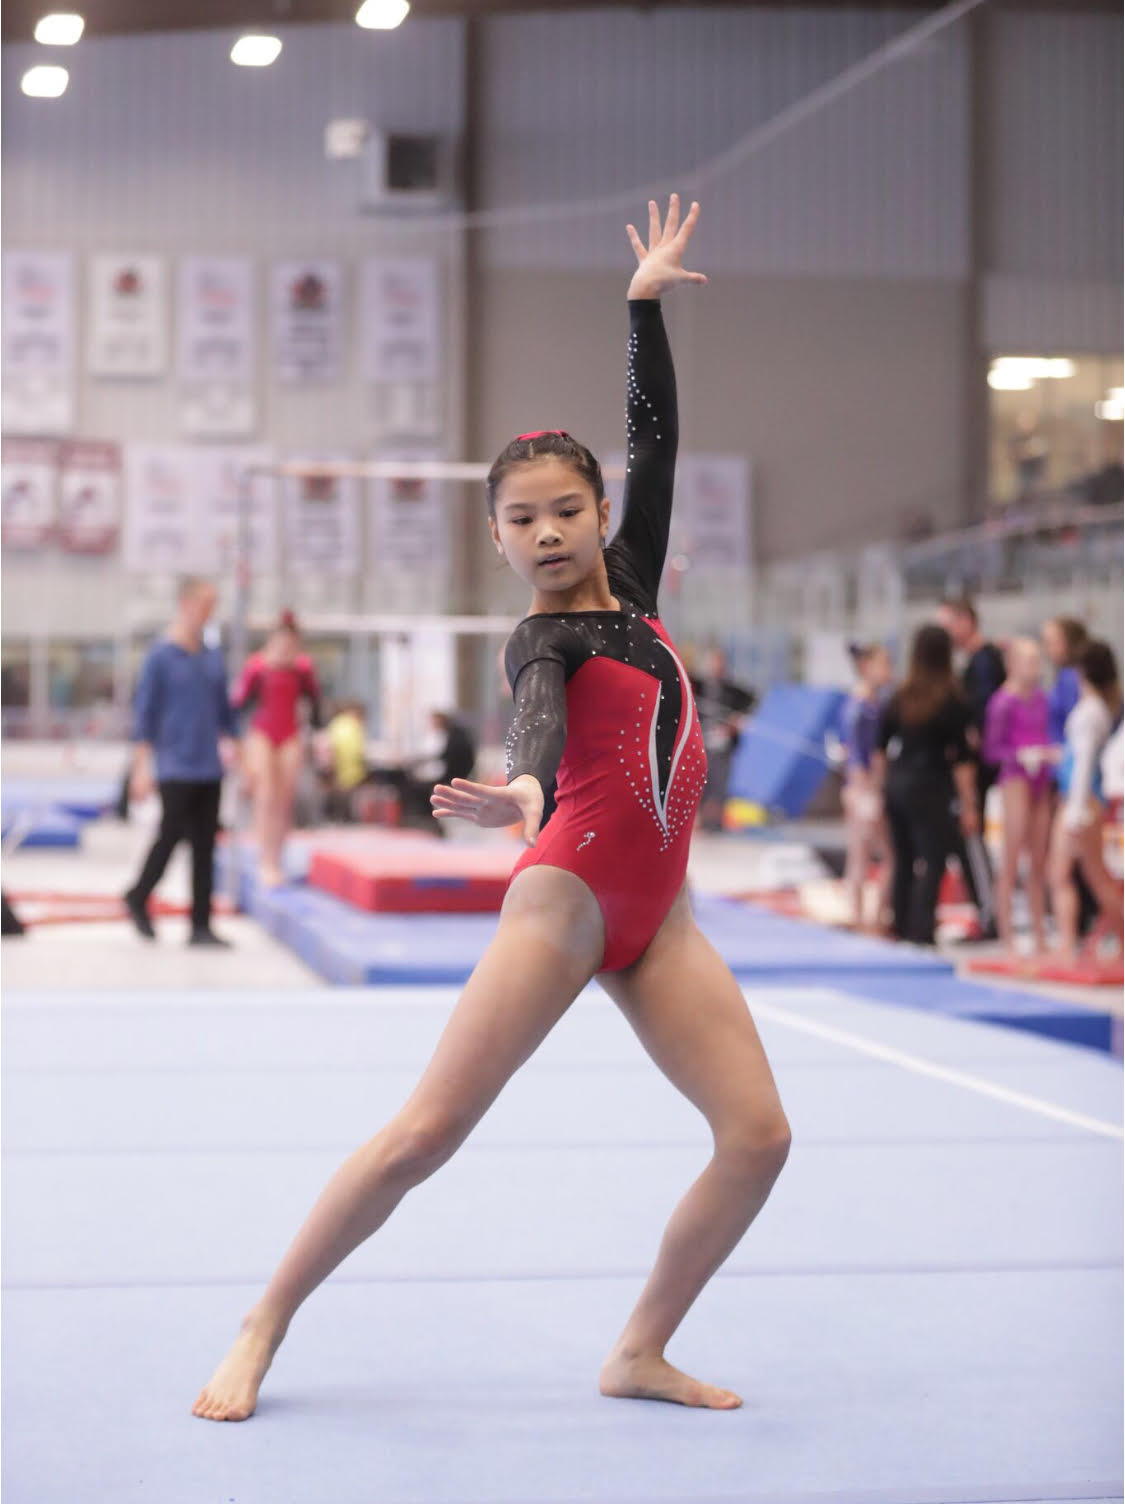 San Lorenzo Student to compete at National Gymnastics Championship